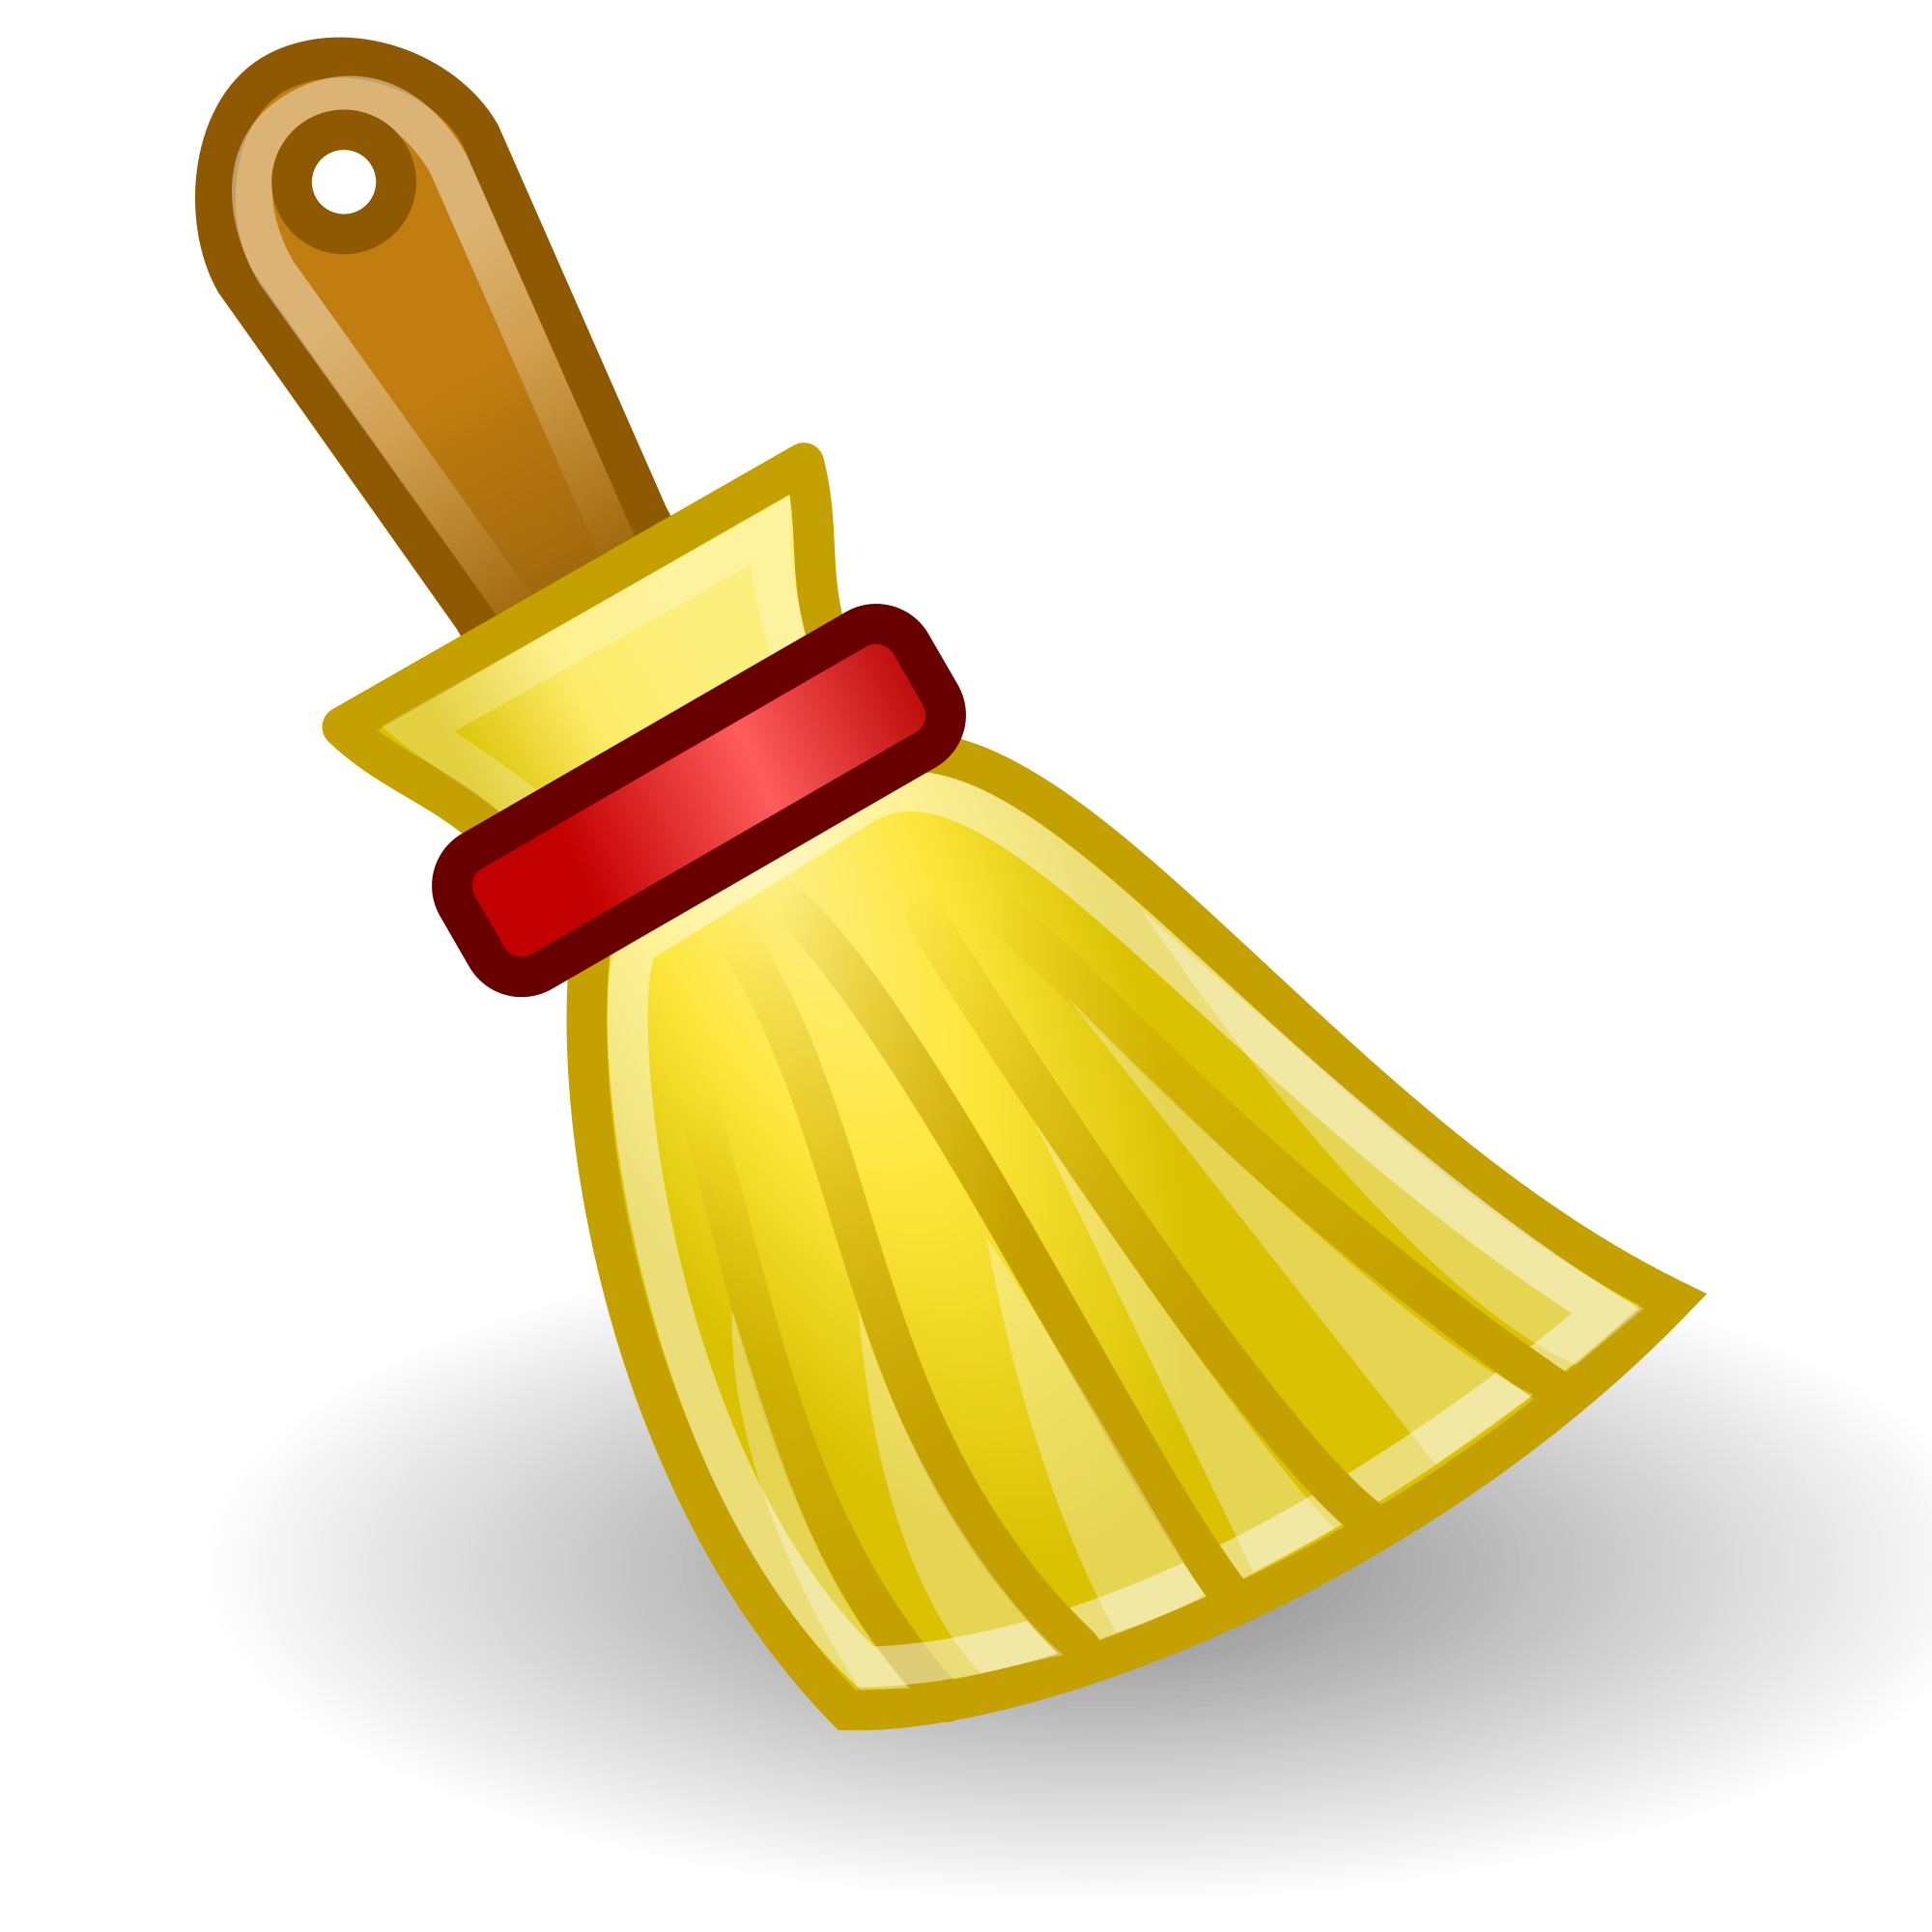 Broom clipart png. Image unturned bunker wiki